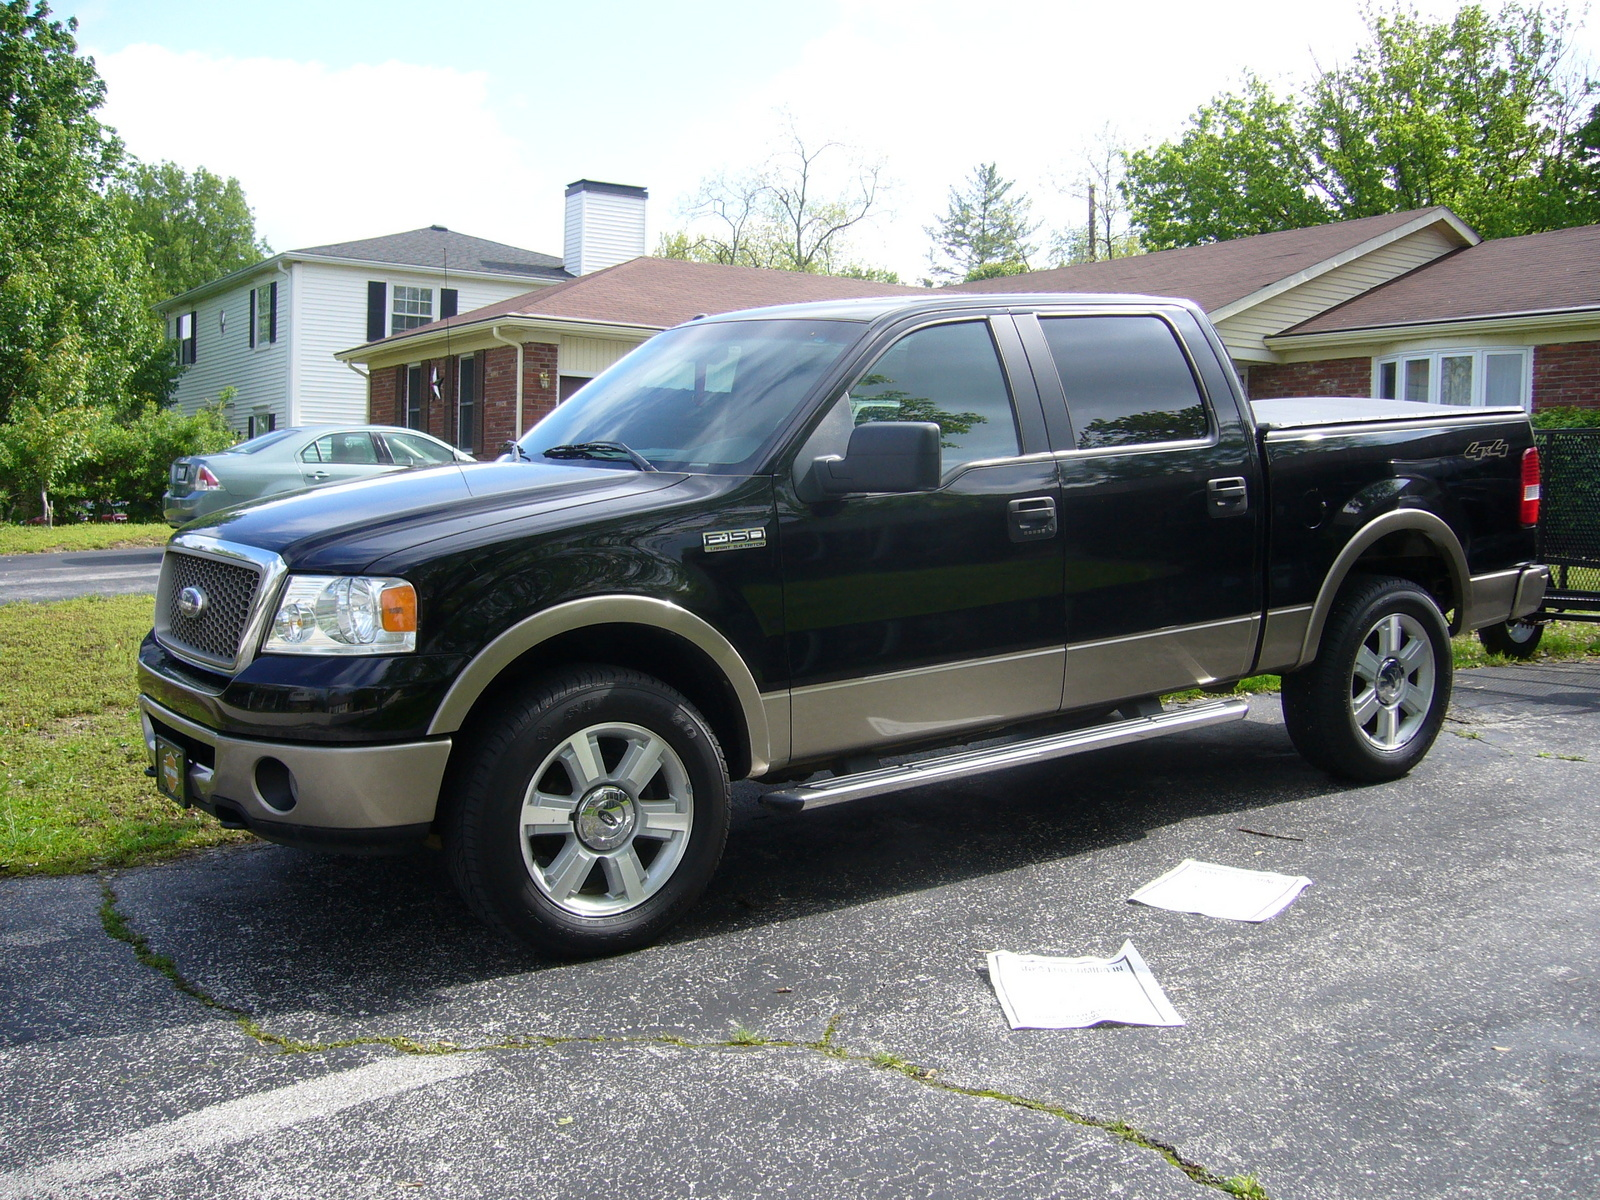 Truck Cab Inside >> Ford F-150 Questions - temp inside of cab takes a long time to get warm 2006 lariat - CarGurus